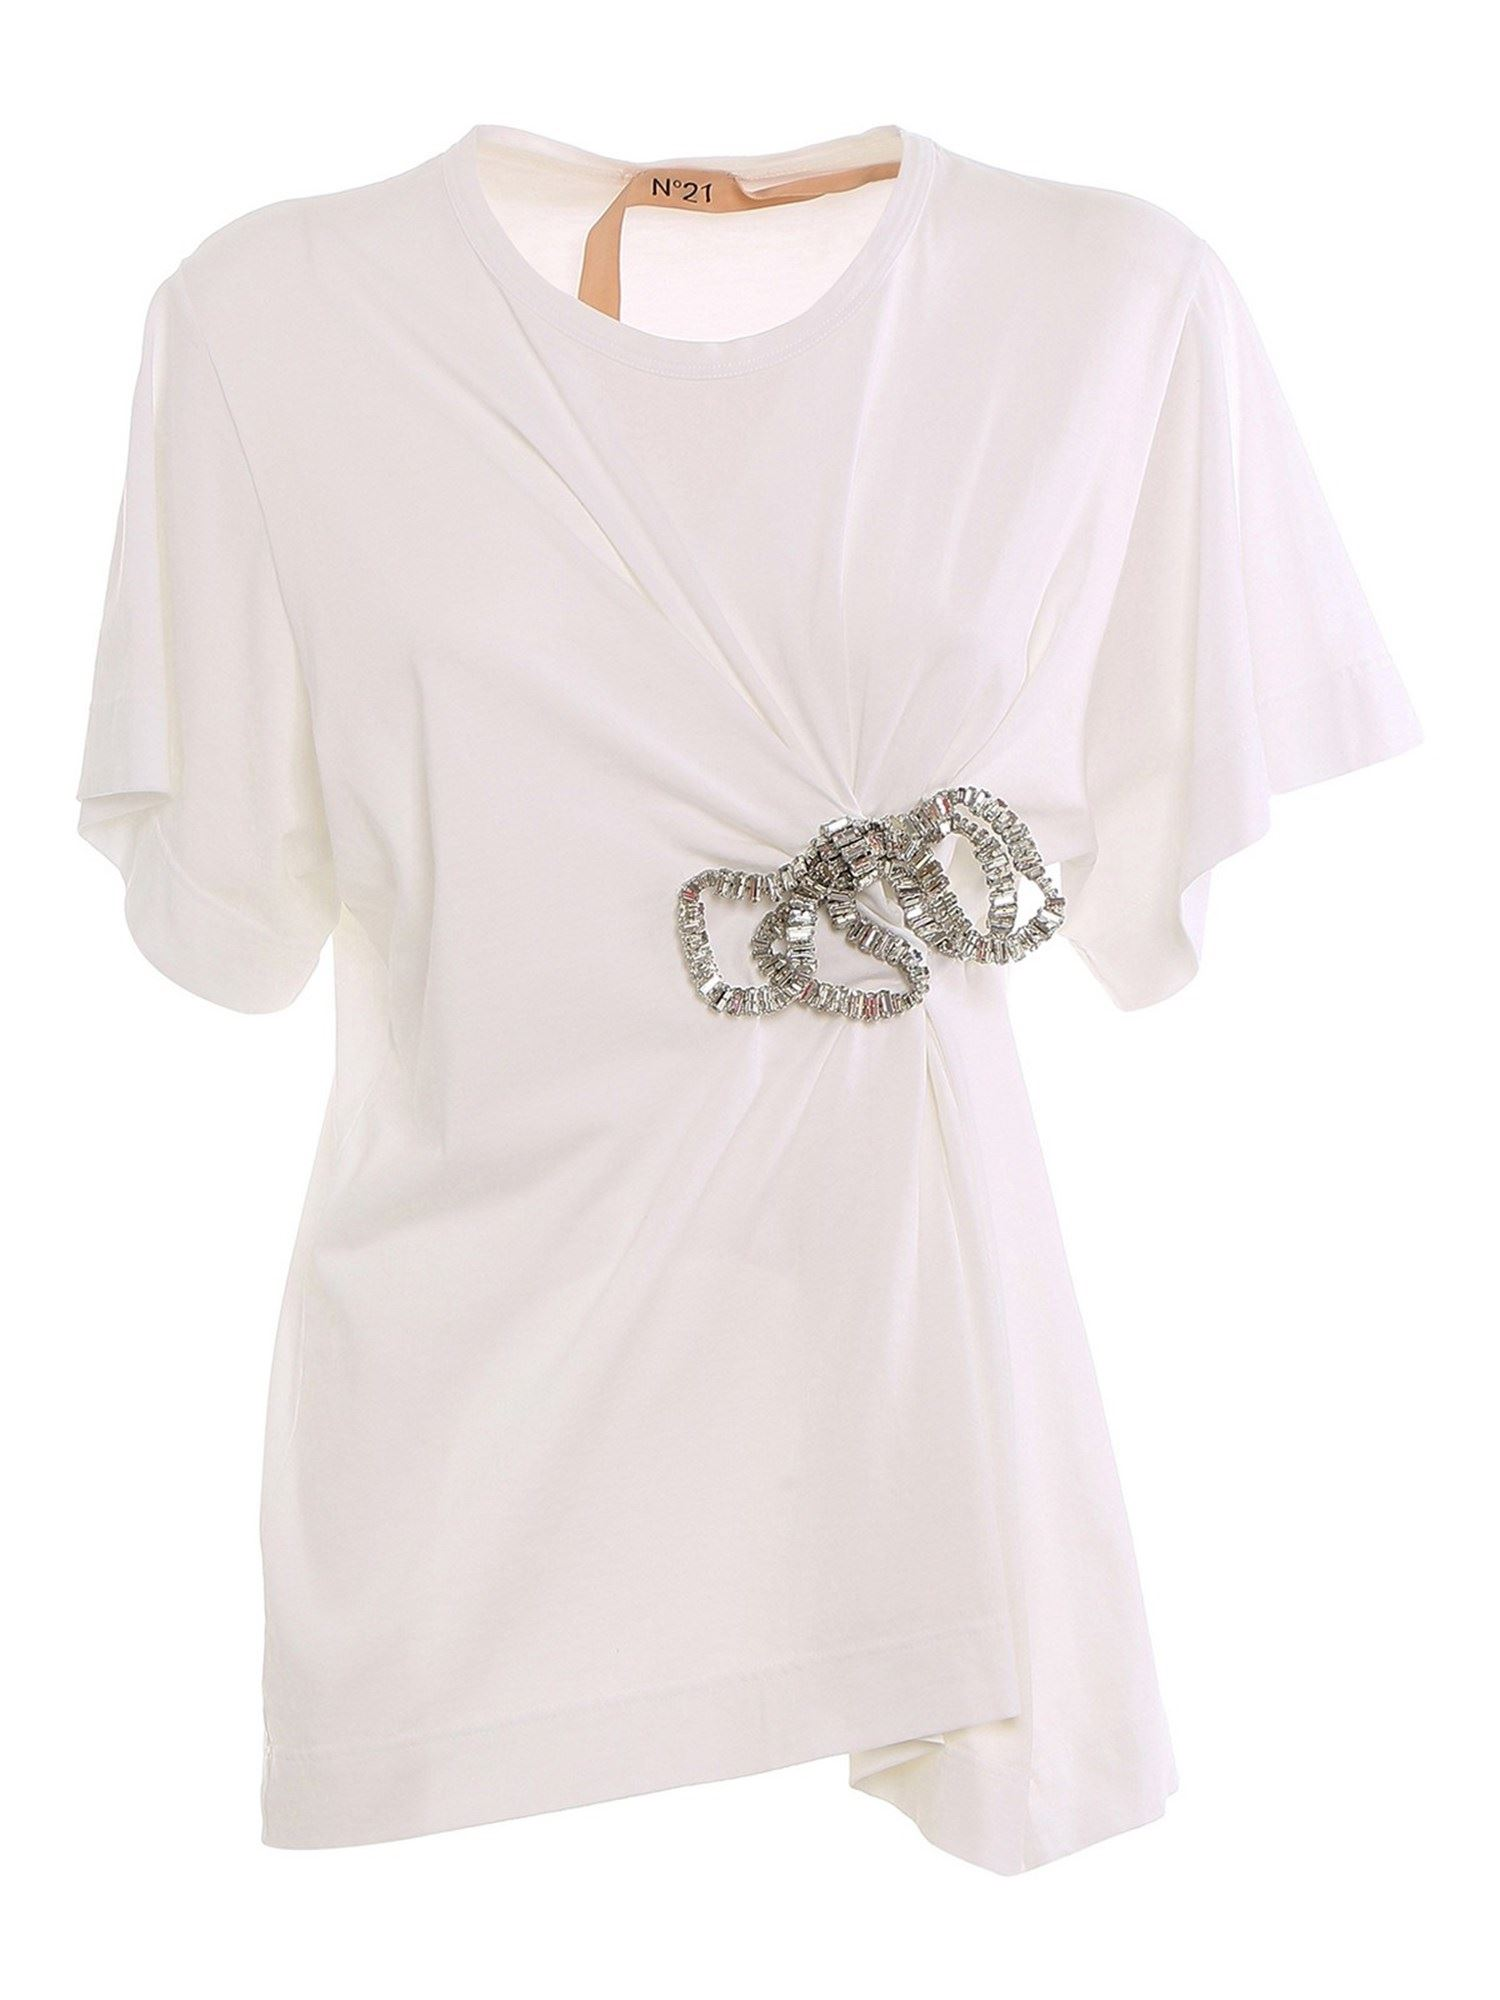 N°21 EMBELLISHED T-SHIRT IN WHITE